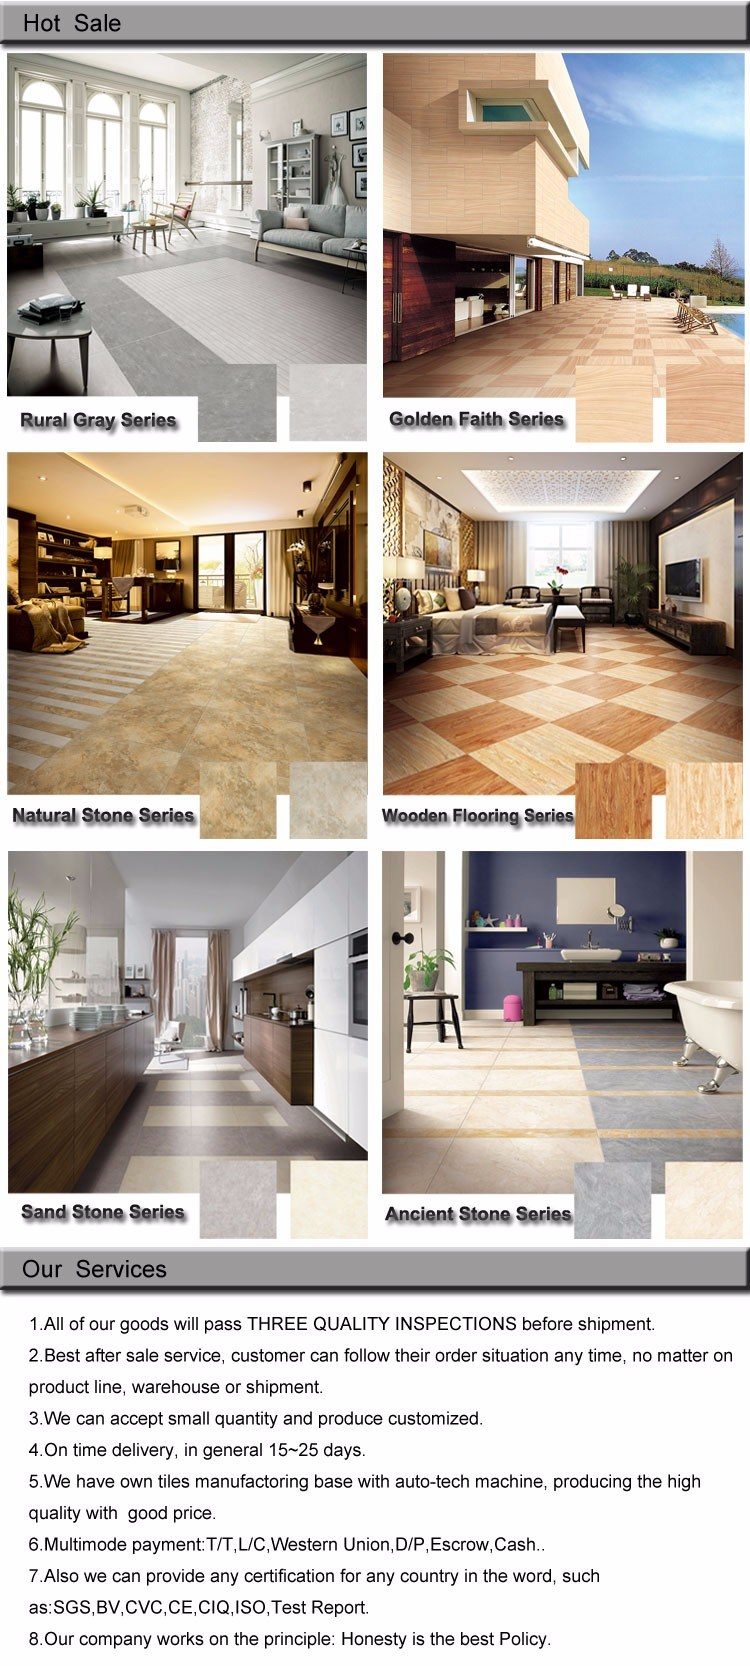 Ceramics tiles company image collections tile flooring design ideas customized ceramic tiles choice image tile flooring design ideas ceramics tiles company image collections tile flooring doublecrazyfo Image collections